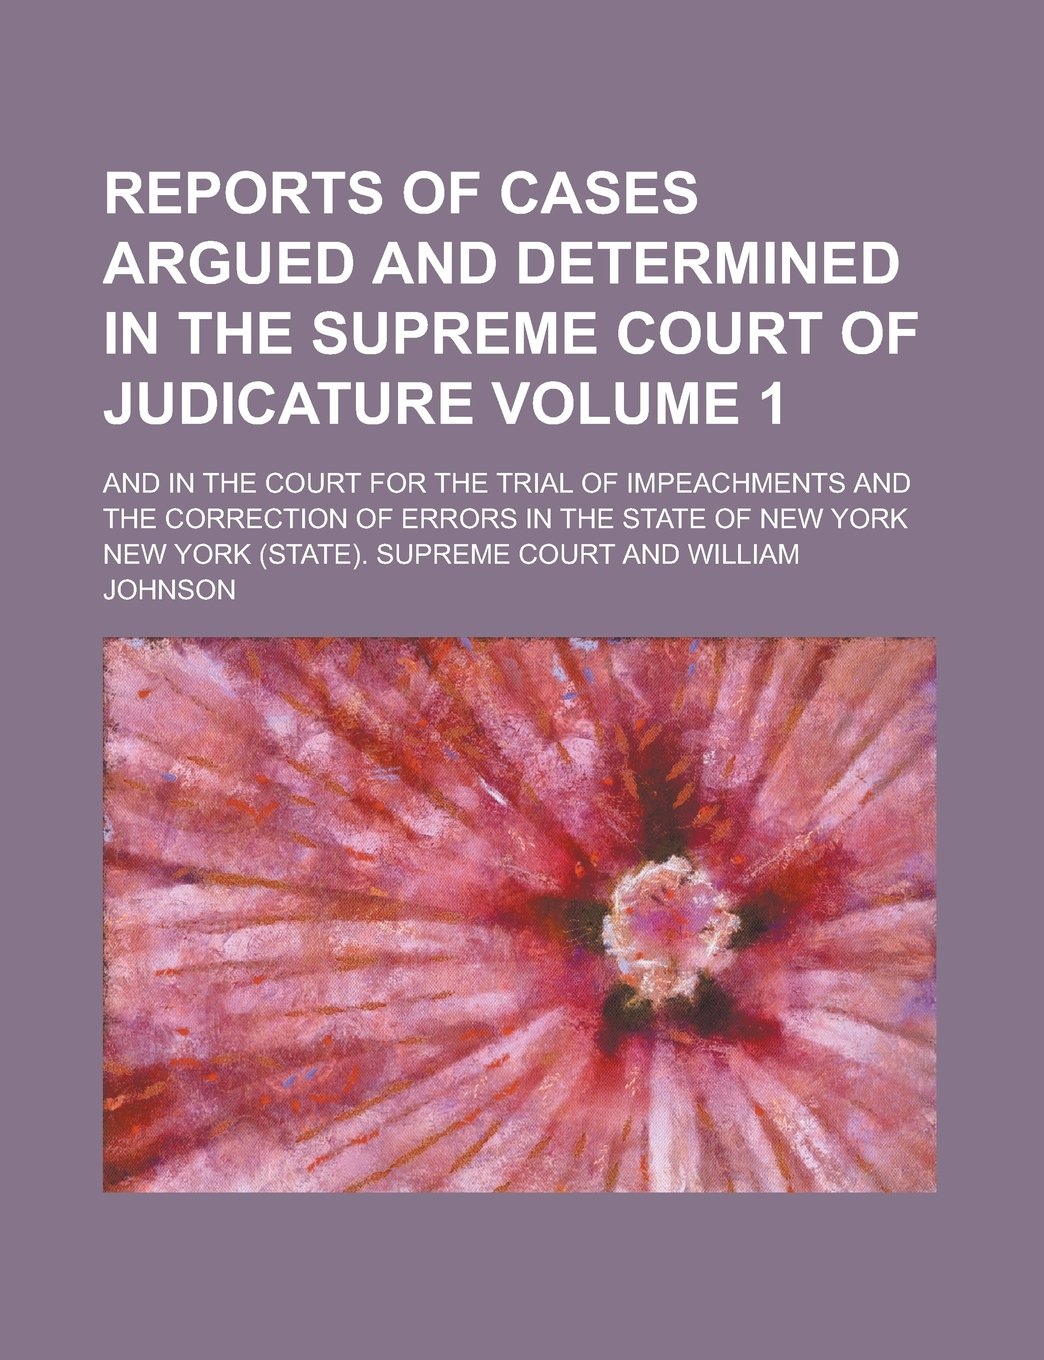 Download Reports of Cases Argued and Determined in the Supreme Court of Judicature; And in the Court for the Trial of Impeachments and the Correction of Errors in the State of New York Volume 1 pdf epub